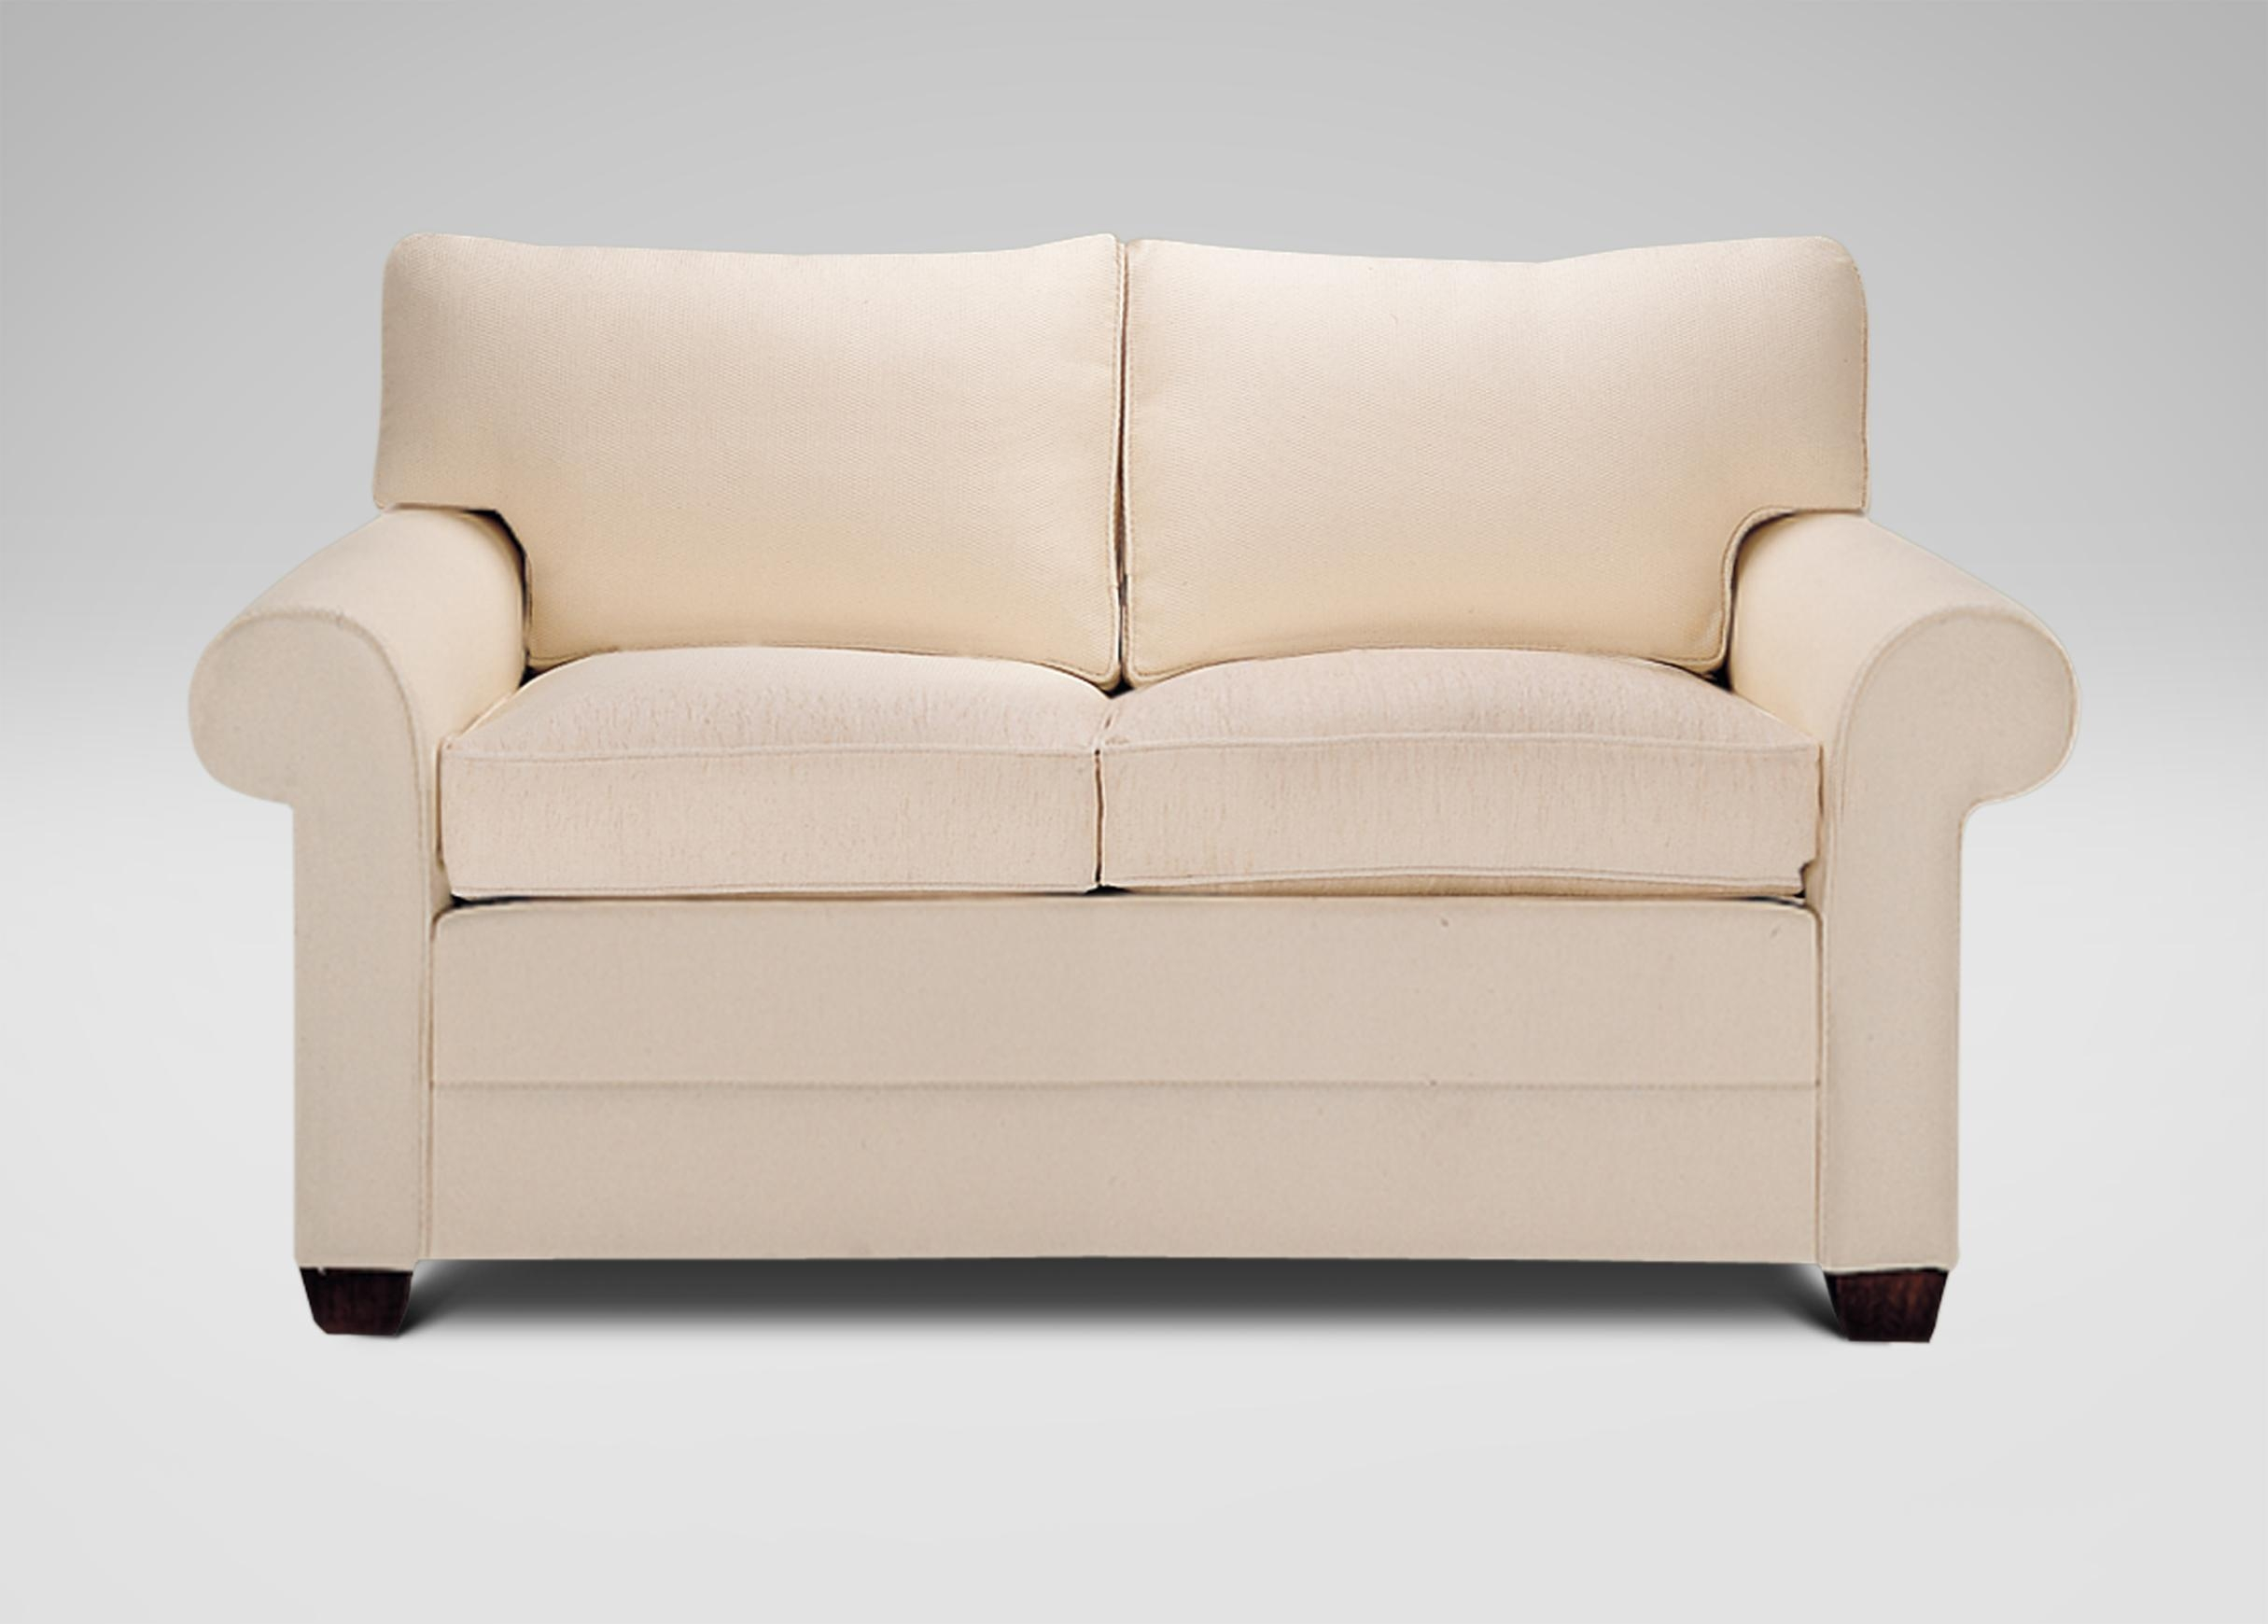 Bennett Roll Arm Loveseat – Ethan Allen In Ethan Allen Sofas And Chairs (View 6 of 20)